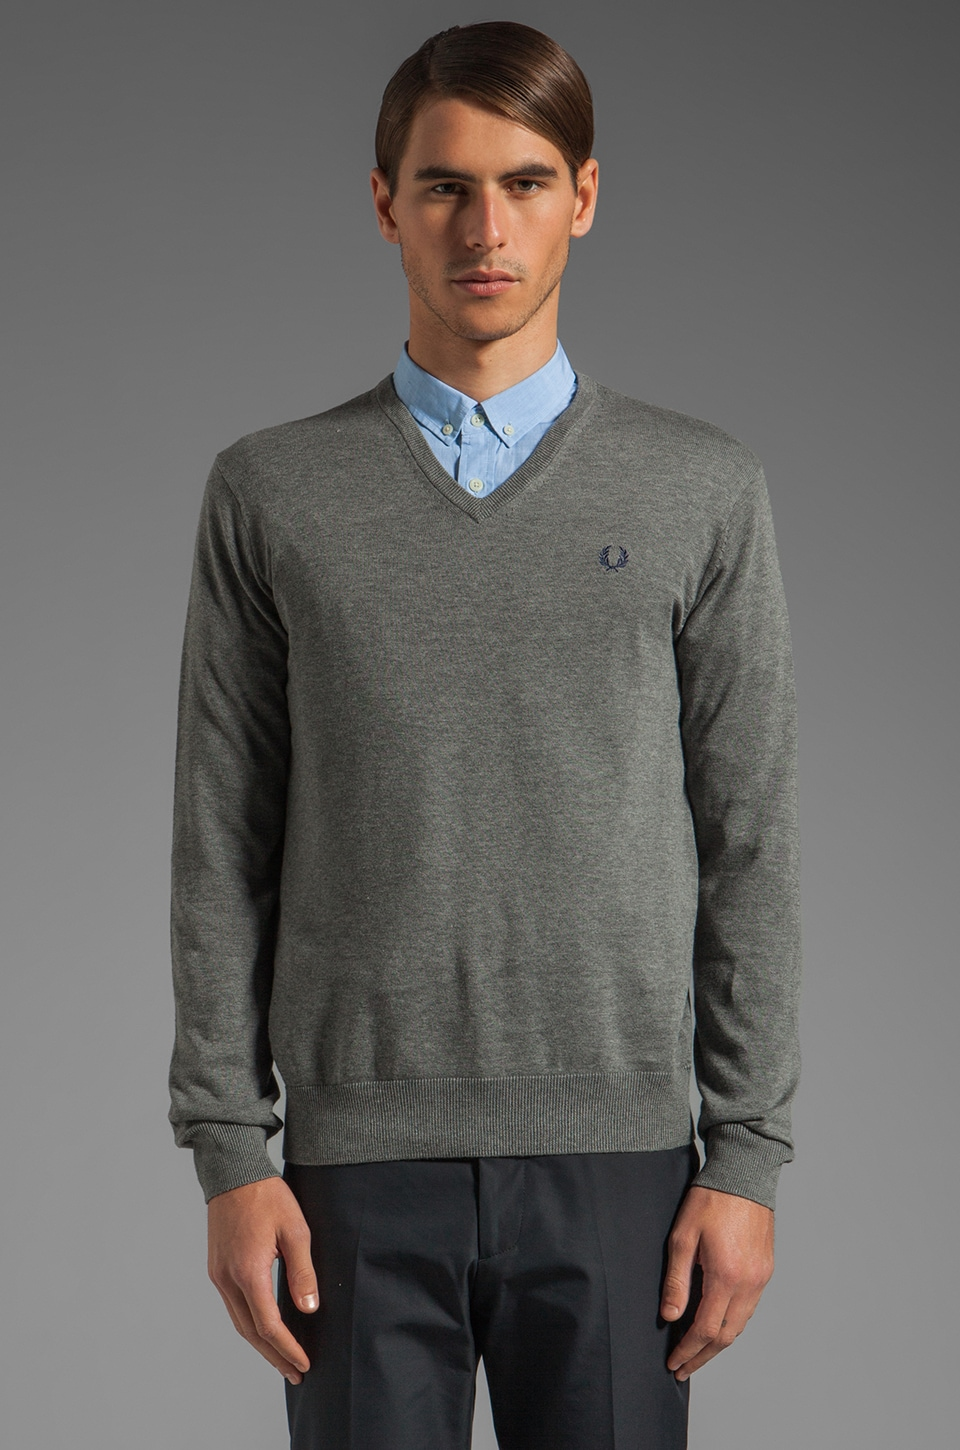 Fred Perry Classic Tipped V-Neck Sweater in Grey Marl